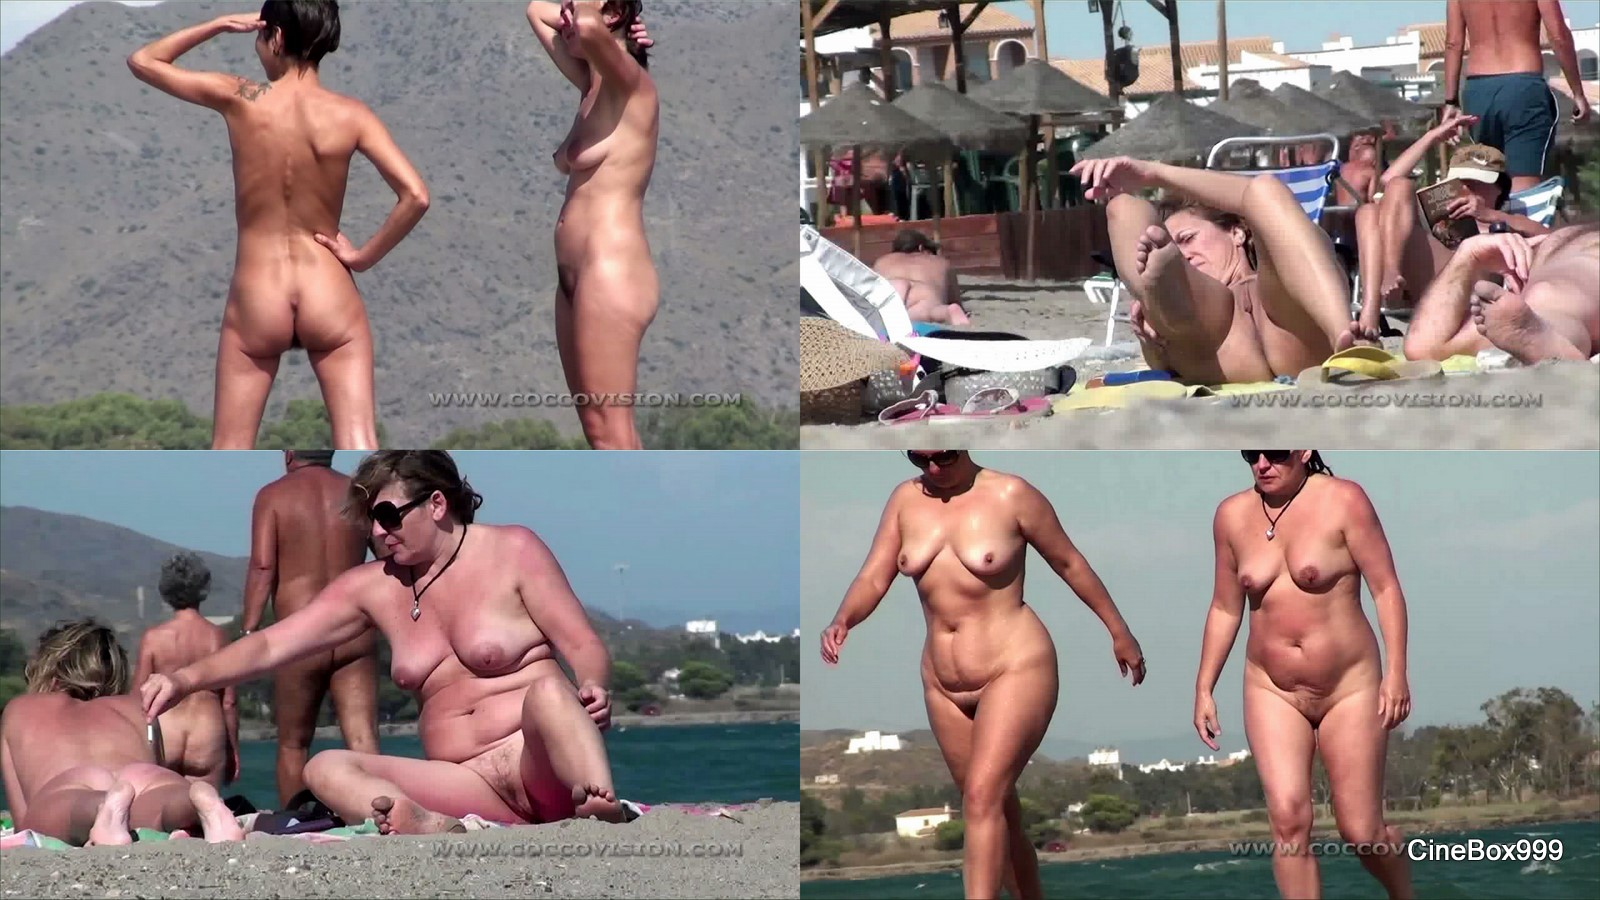 skachat-video-nudisti